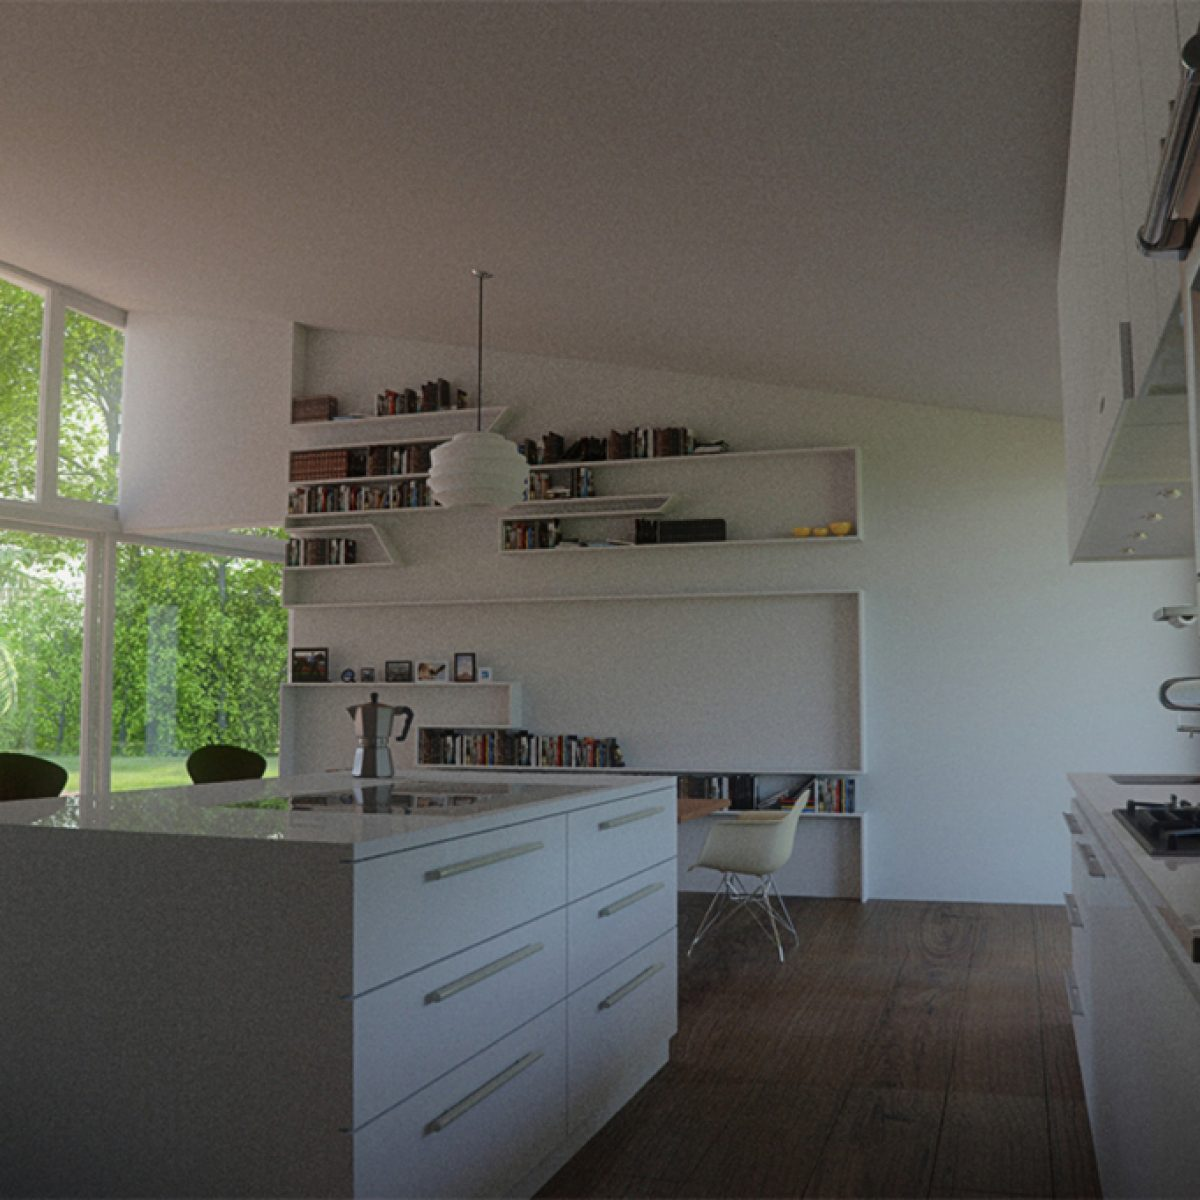 Interior View of Houses